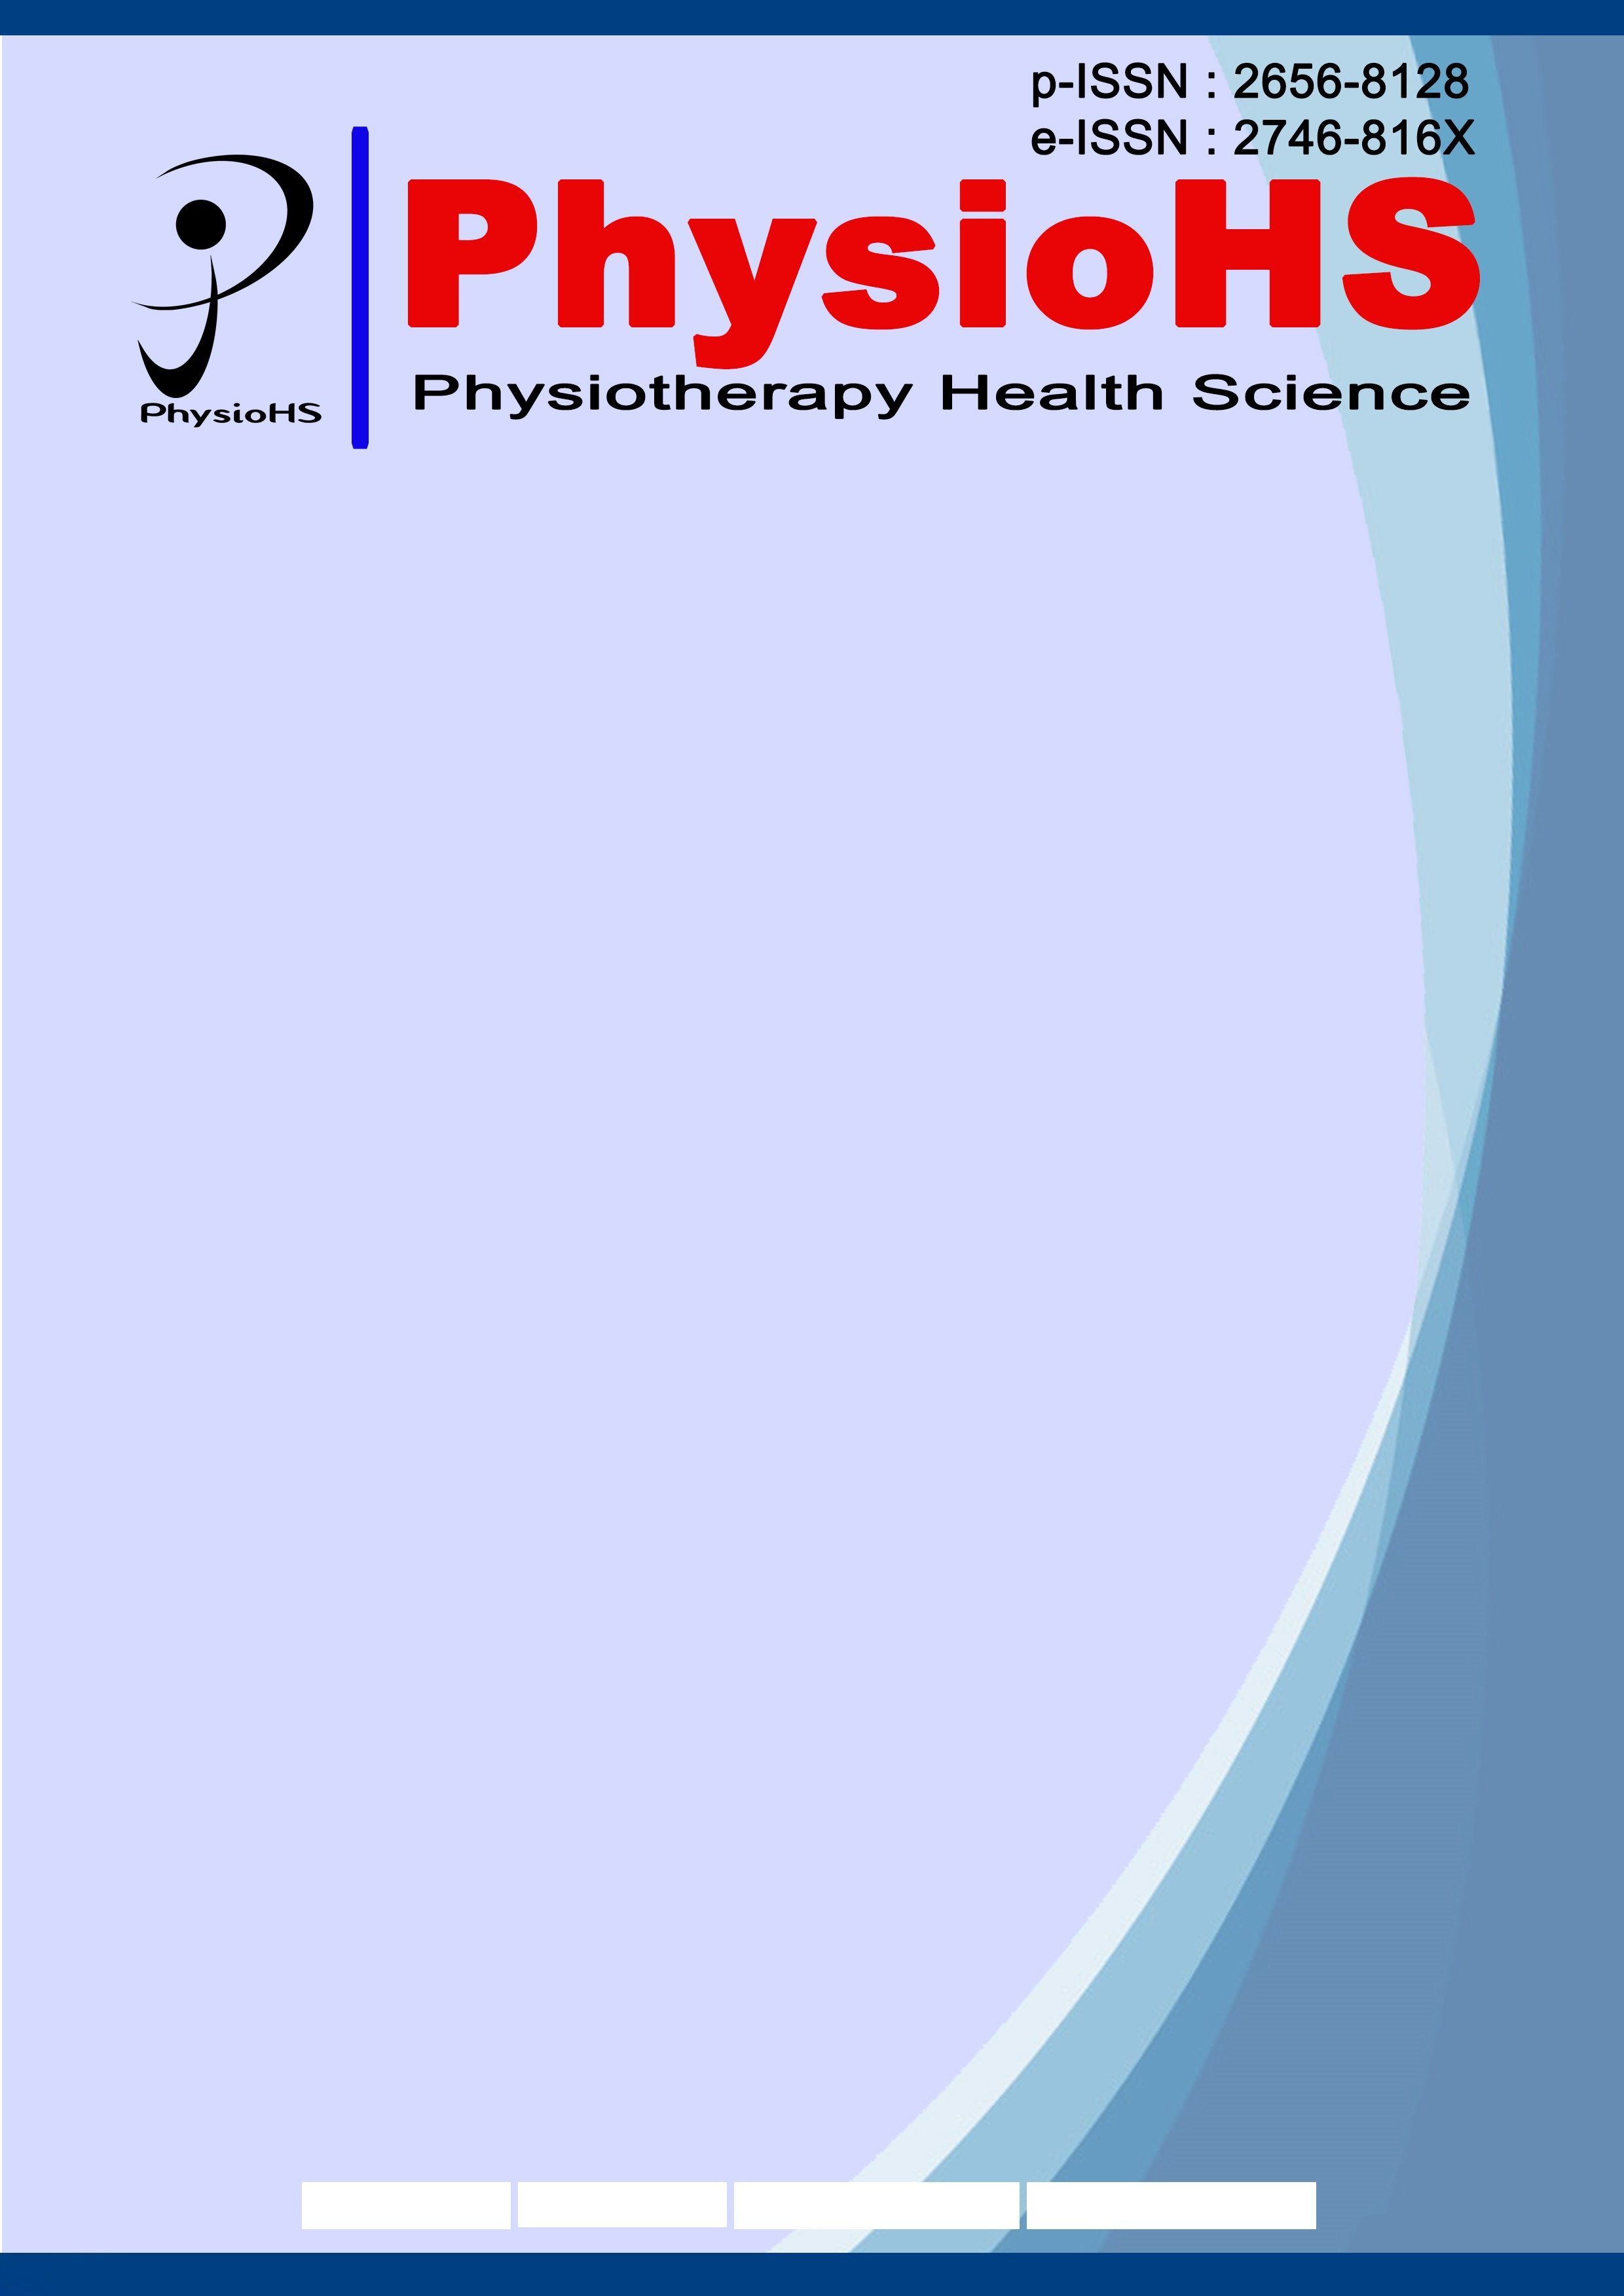 View Vol. 2 No. 2 (2020): Physiotherapy Health Science (PhysioHS) - Edisi Desember 2020